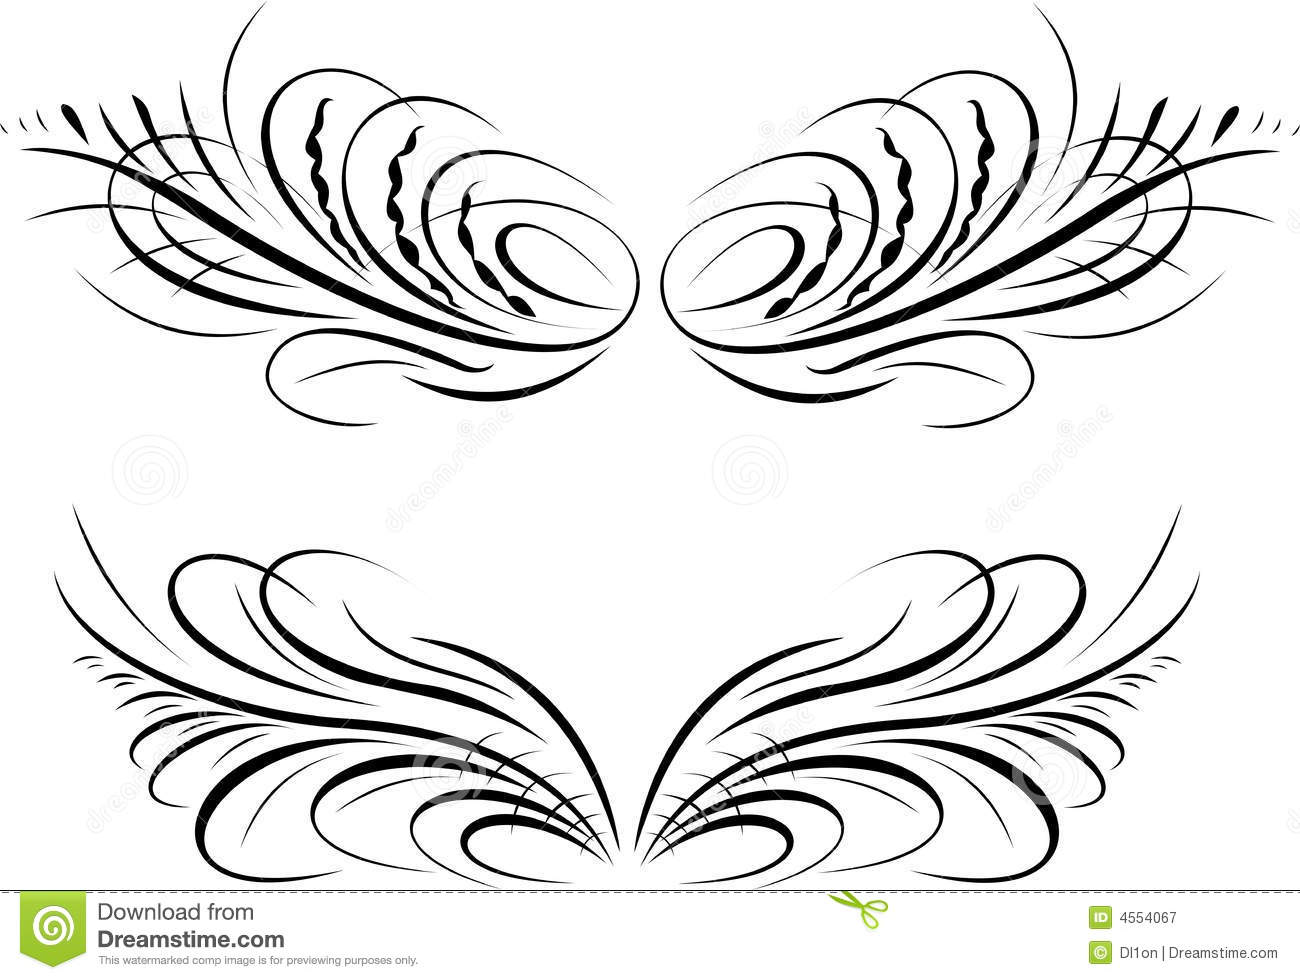 Calligraphy Baroque Curves Royalty Free Stock Photography